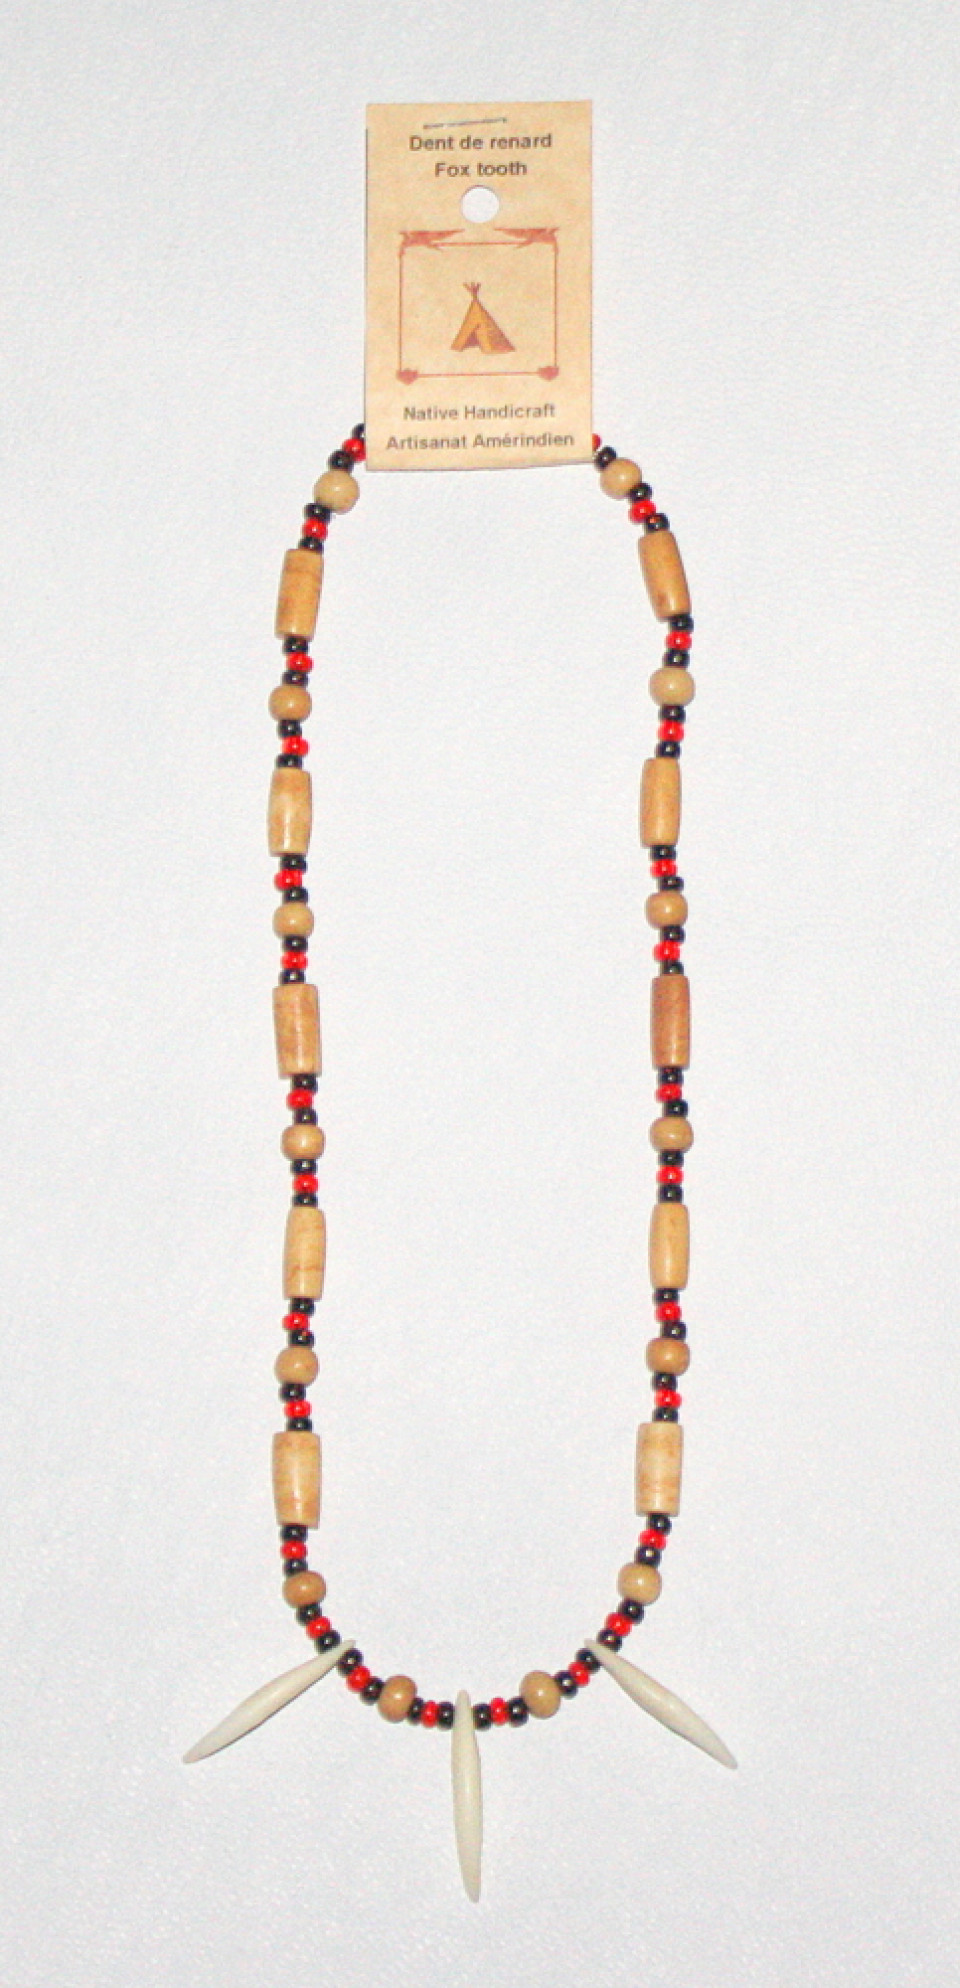 Genuine Fox Tooth Necklace 228B